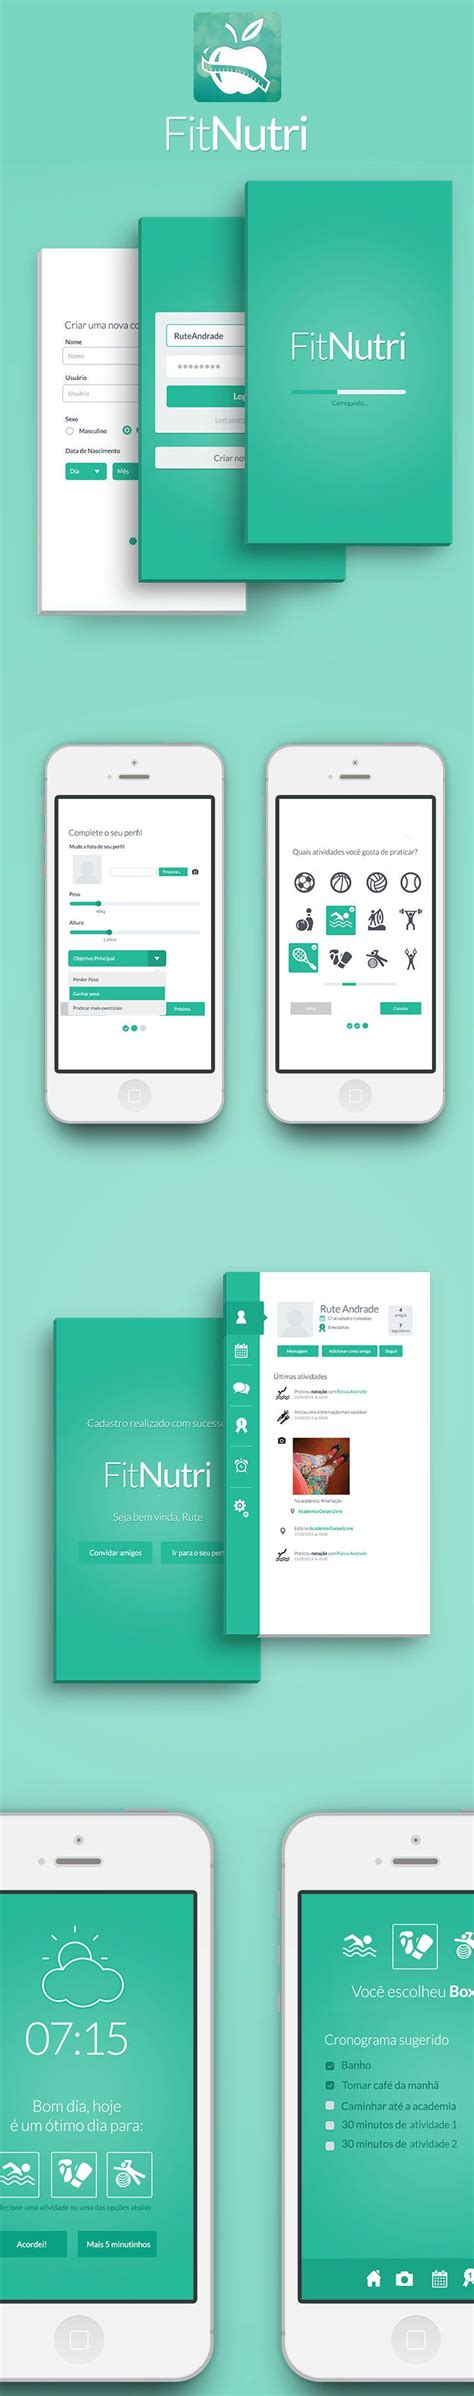 layout app mobile 14 best images about mobile app design on pinterest